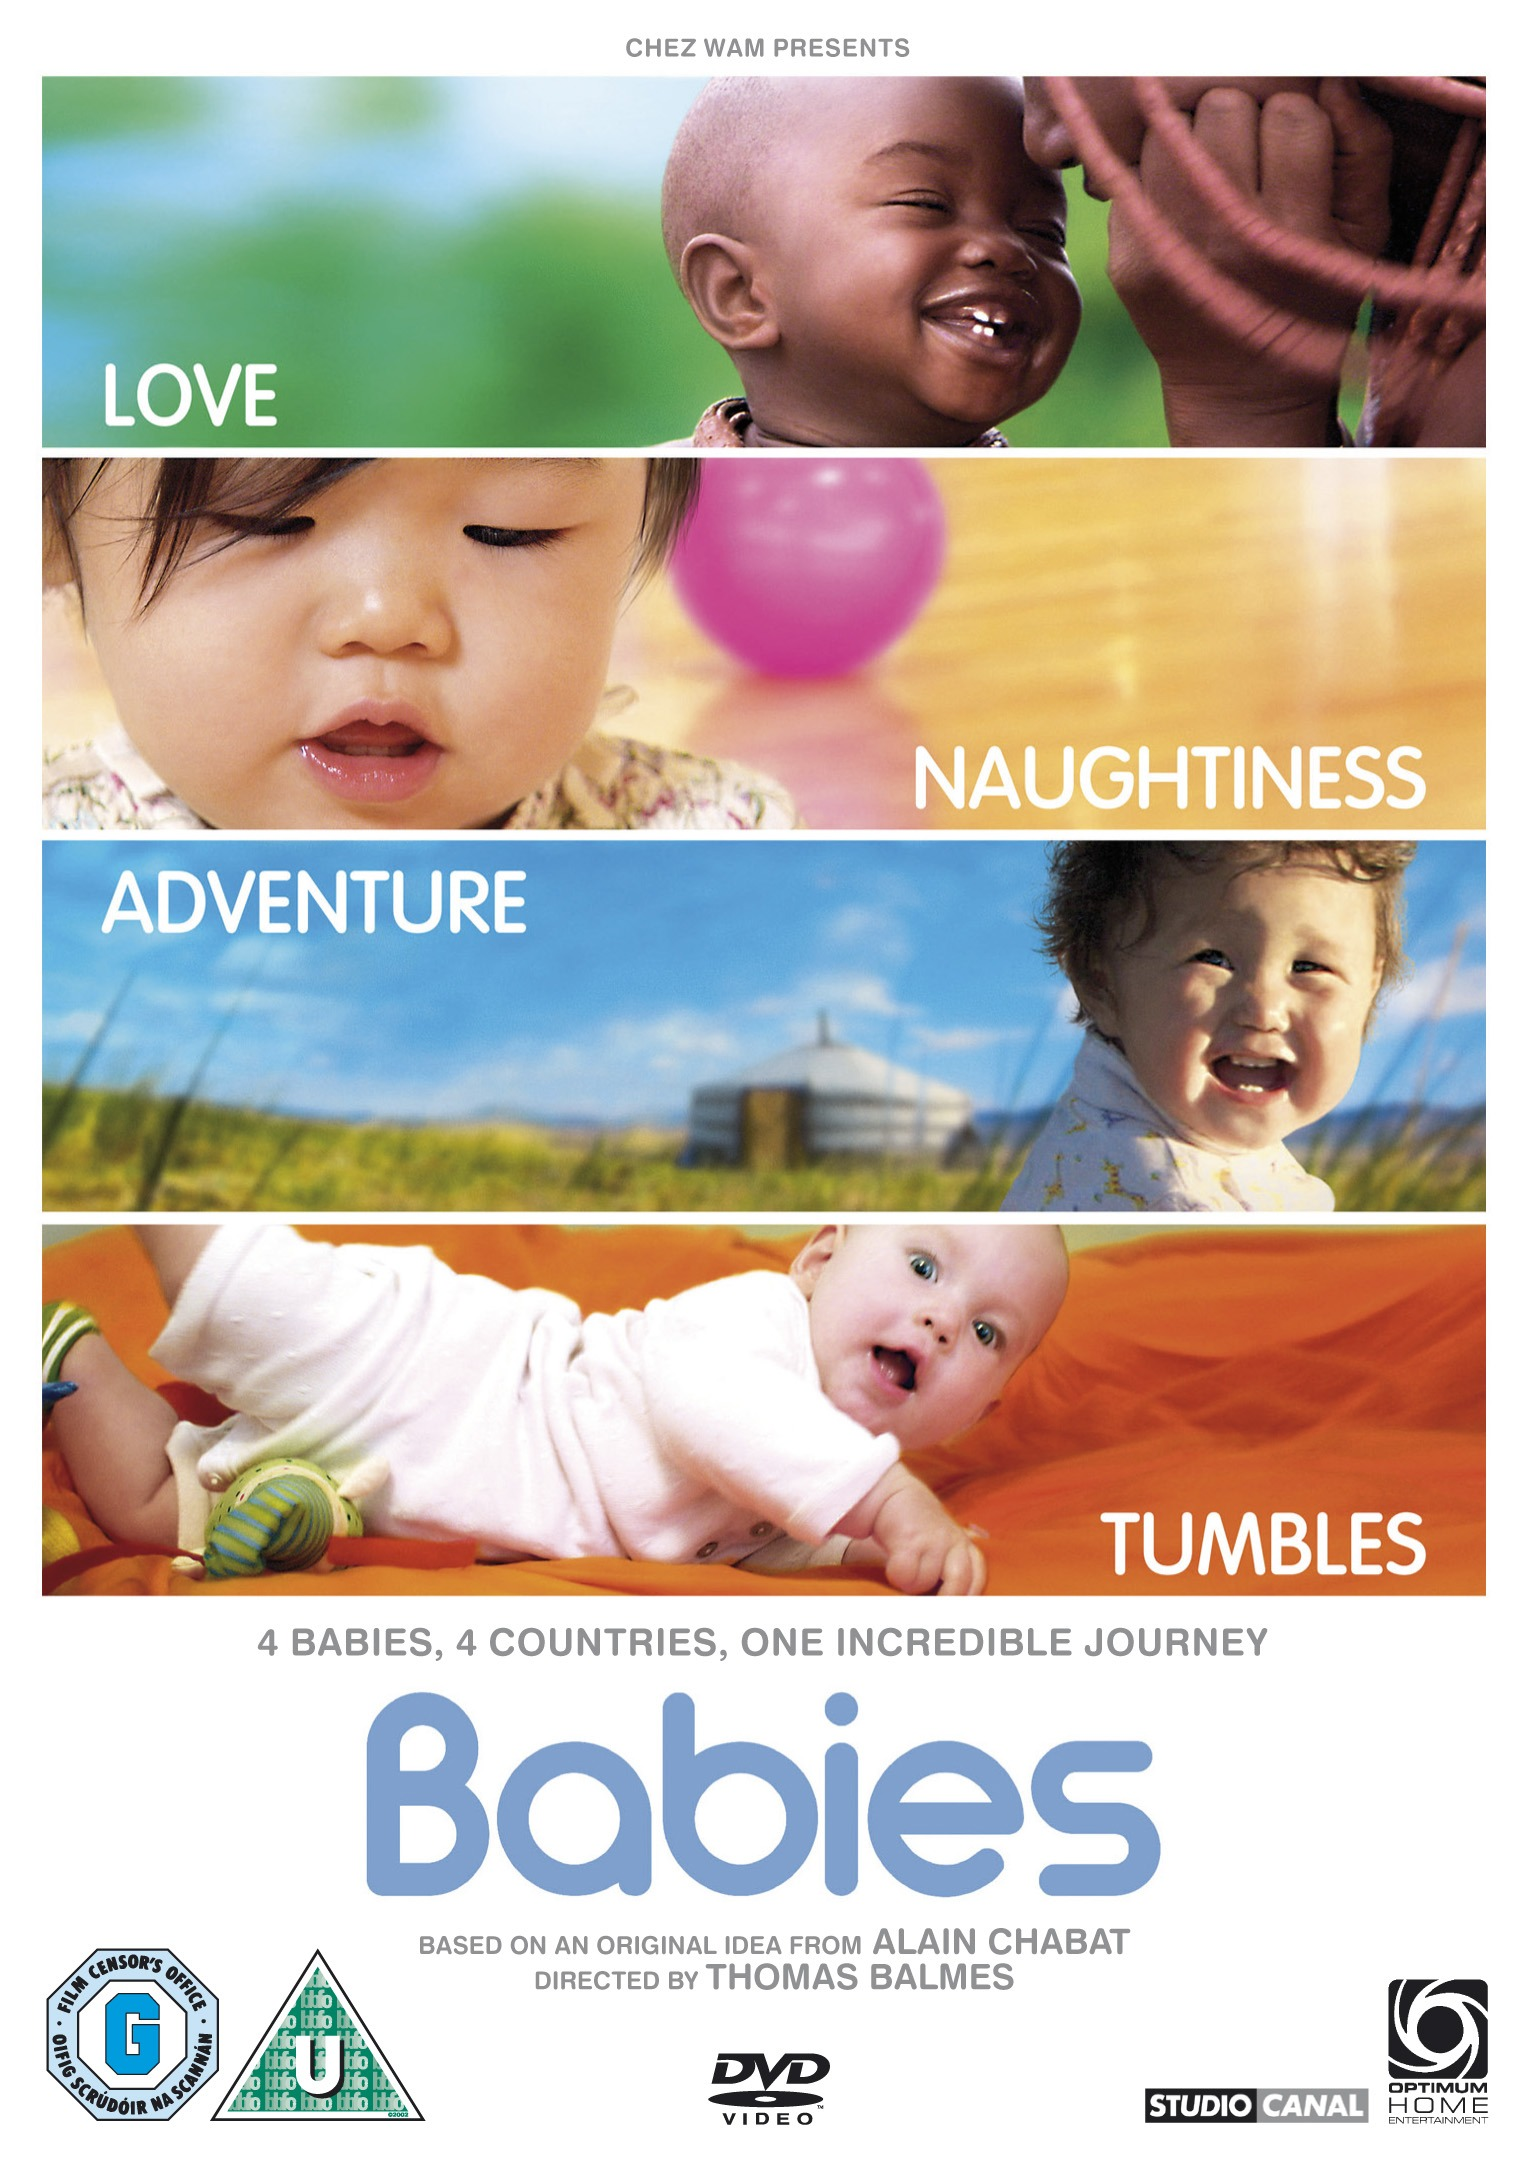 Babies: this year's most uplifting movie